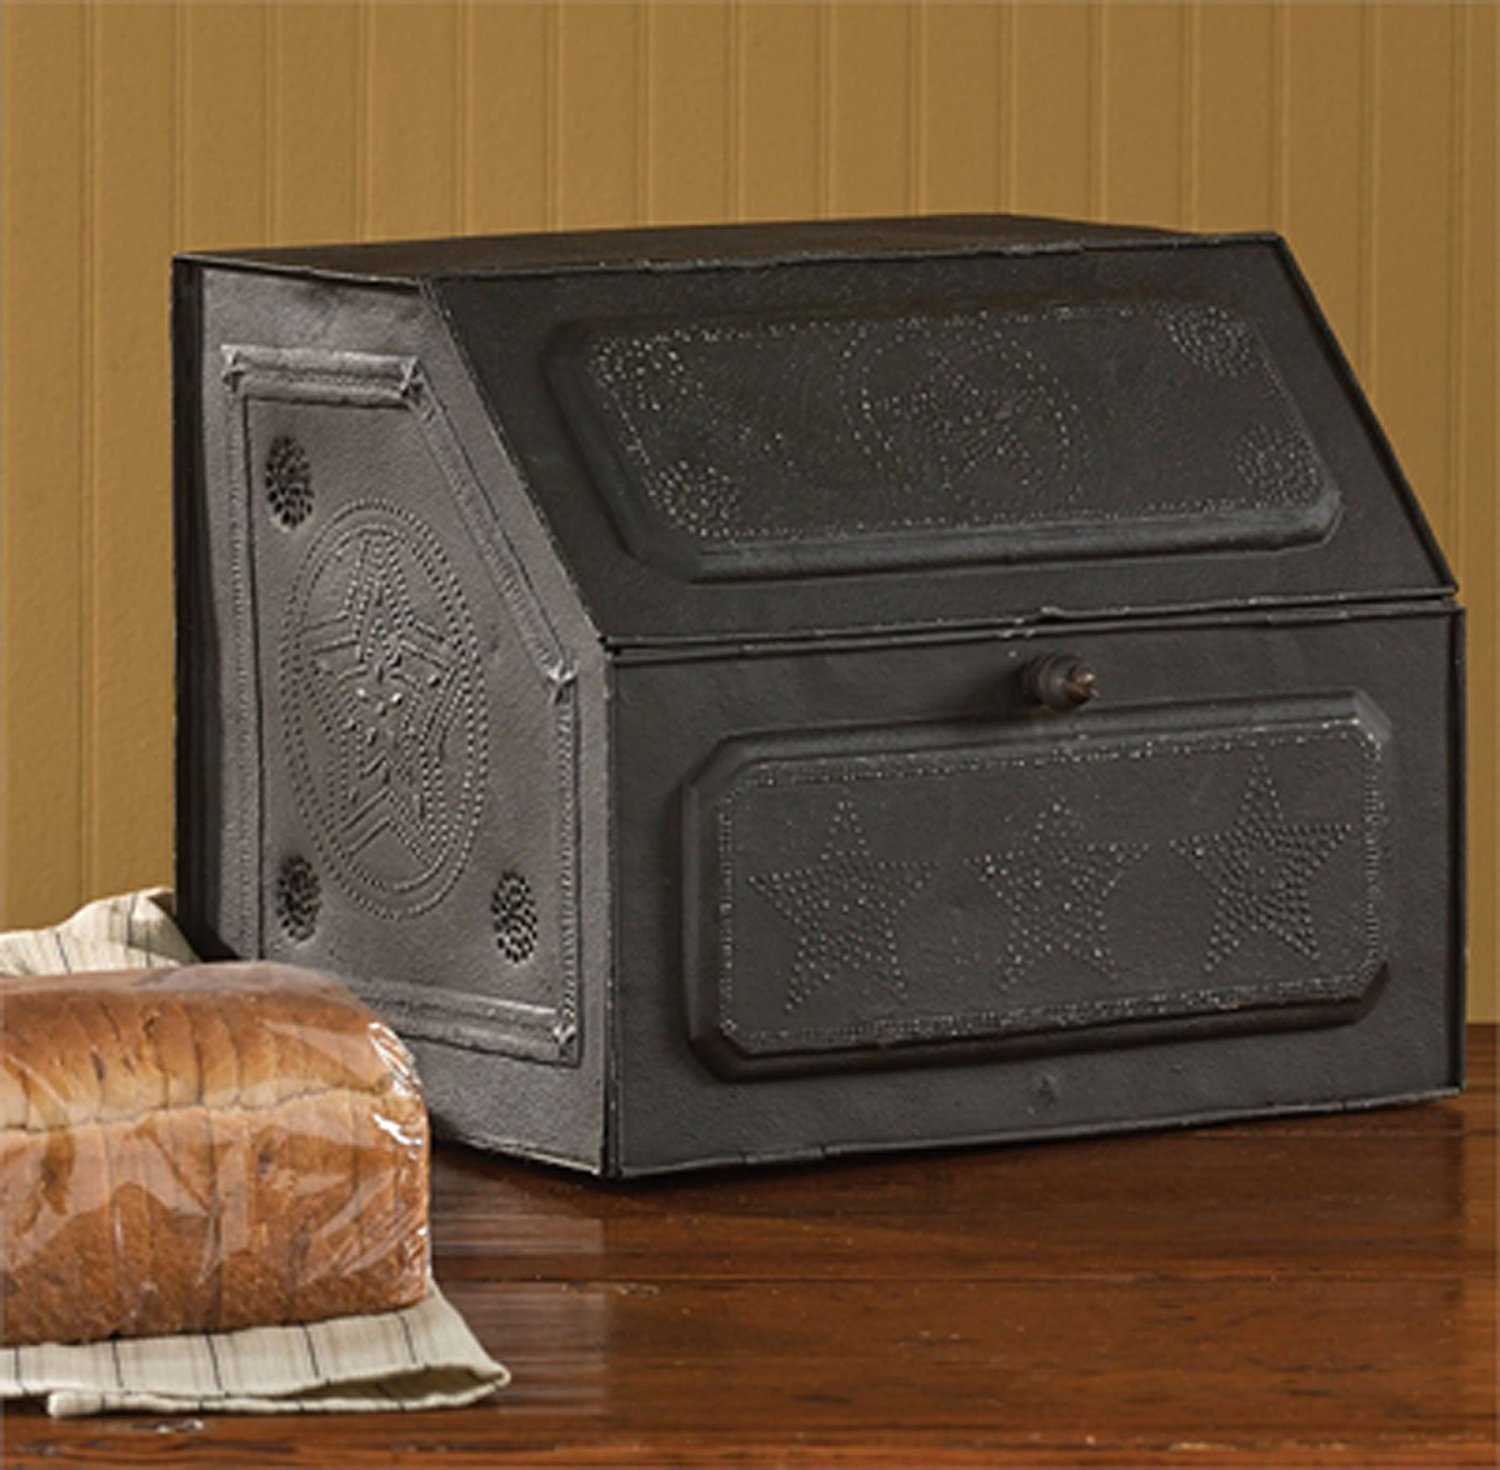 Antique Replica of Tin Bread Box/desk Storage 21-190